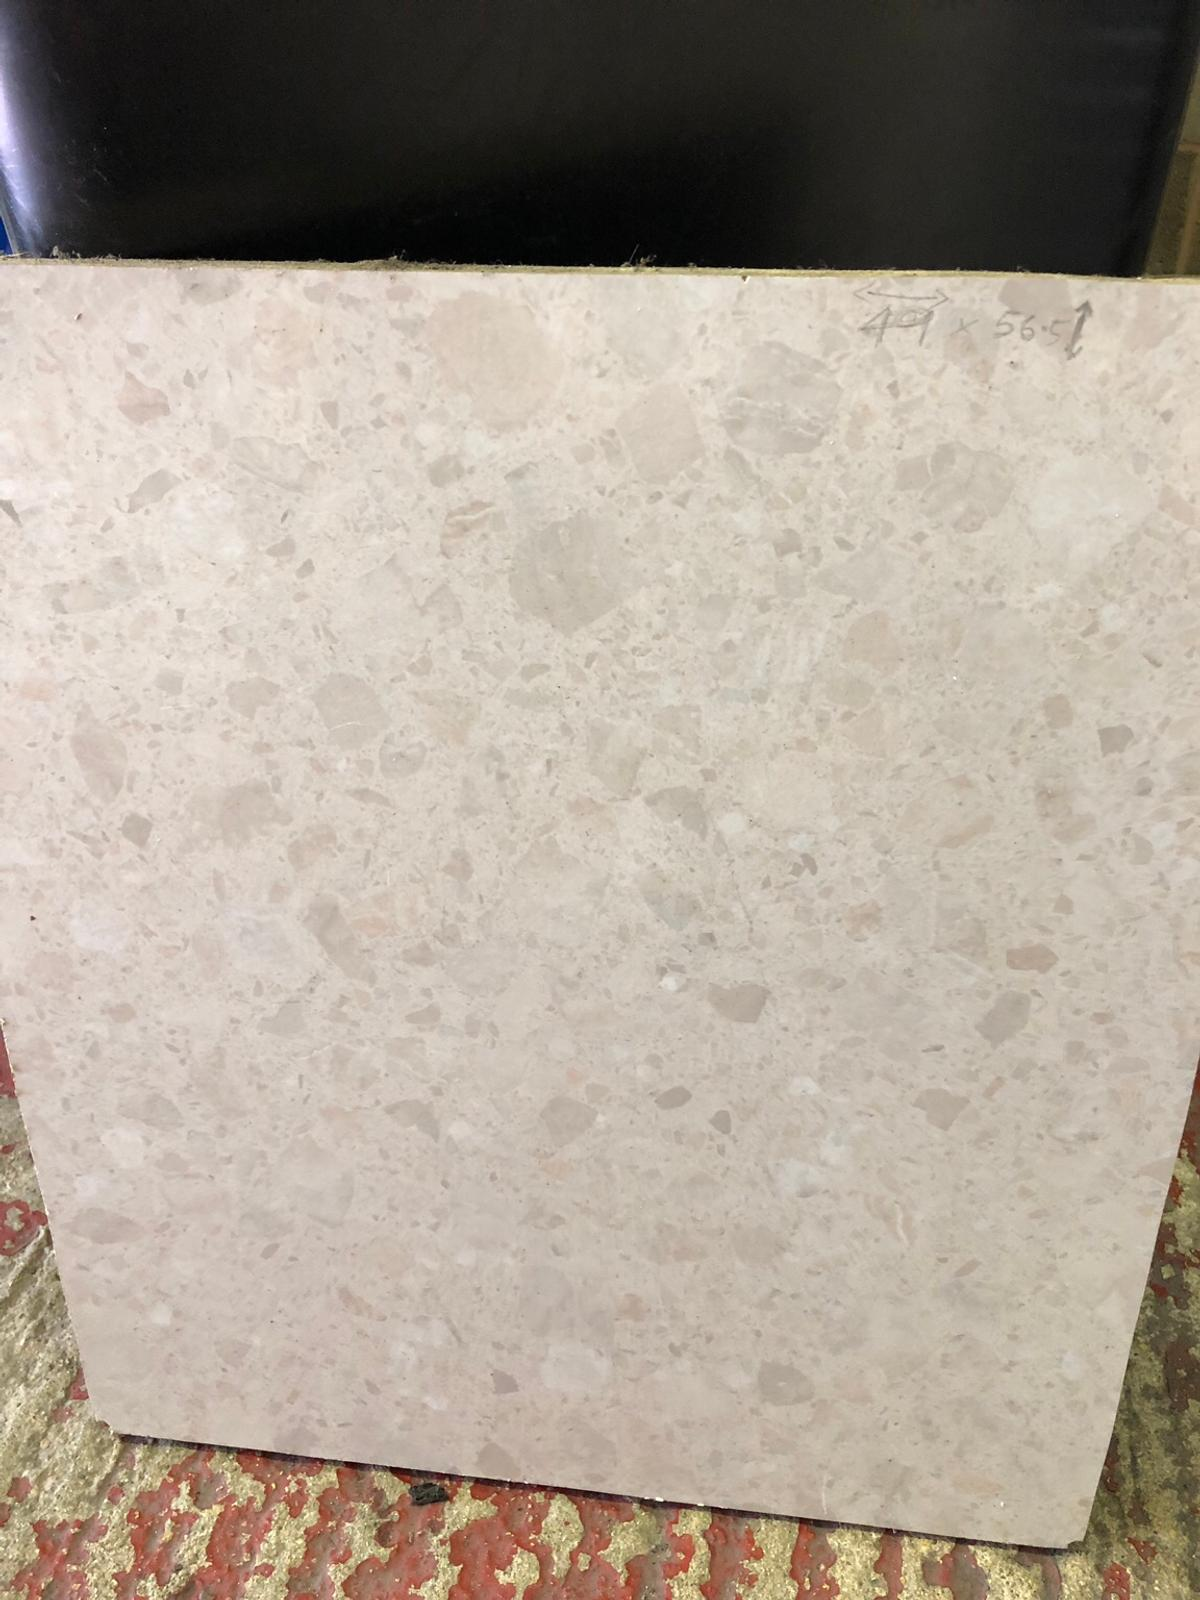 Marble design worktop pieces Kept in dry / garage - just bit of cleaning required. Collection only £38 for both pieces